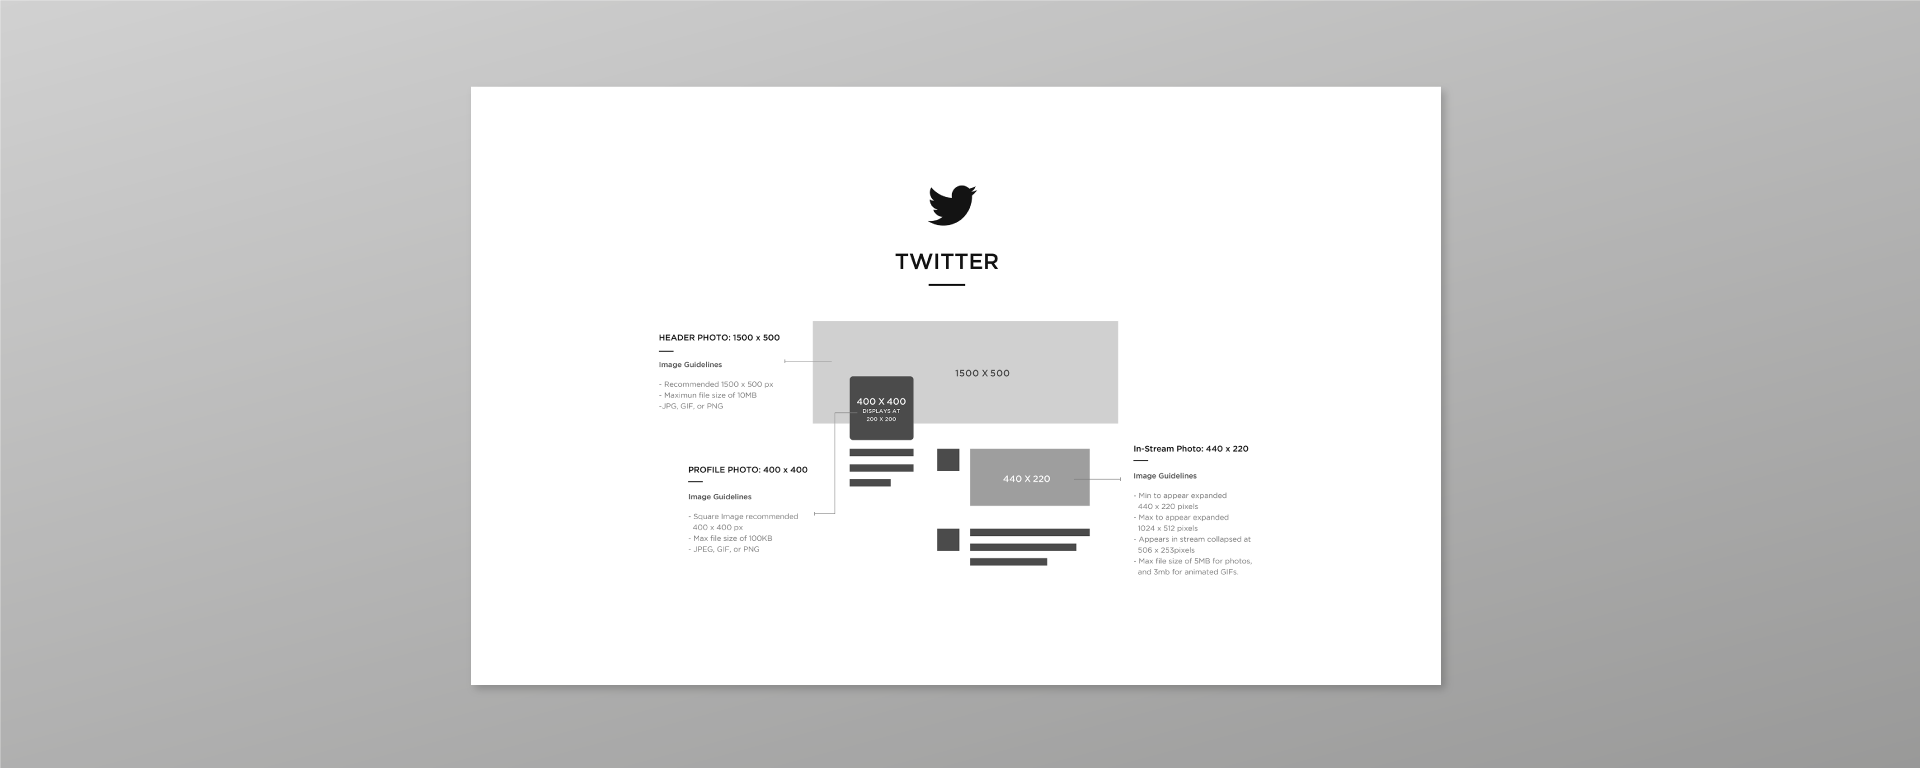 Nilead design management twitter guidelines